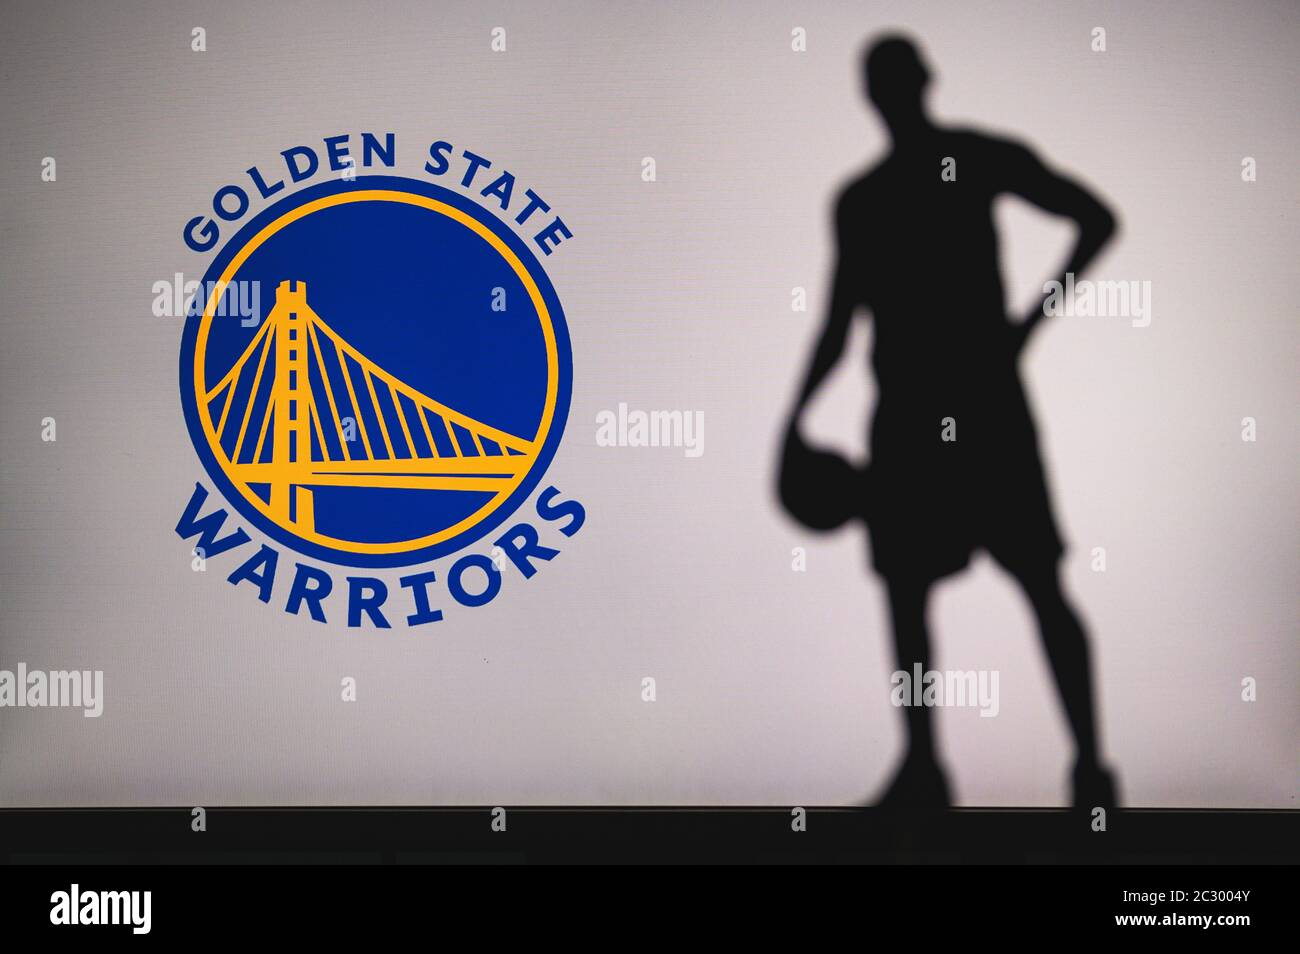 Golden State Warriors Logo High Resolution Stock Photography And Images Alamy